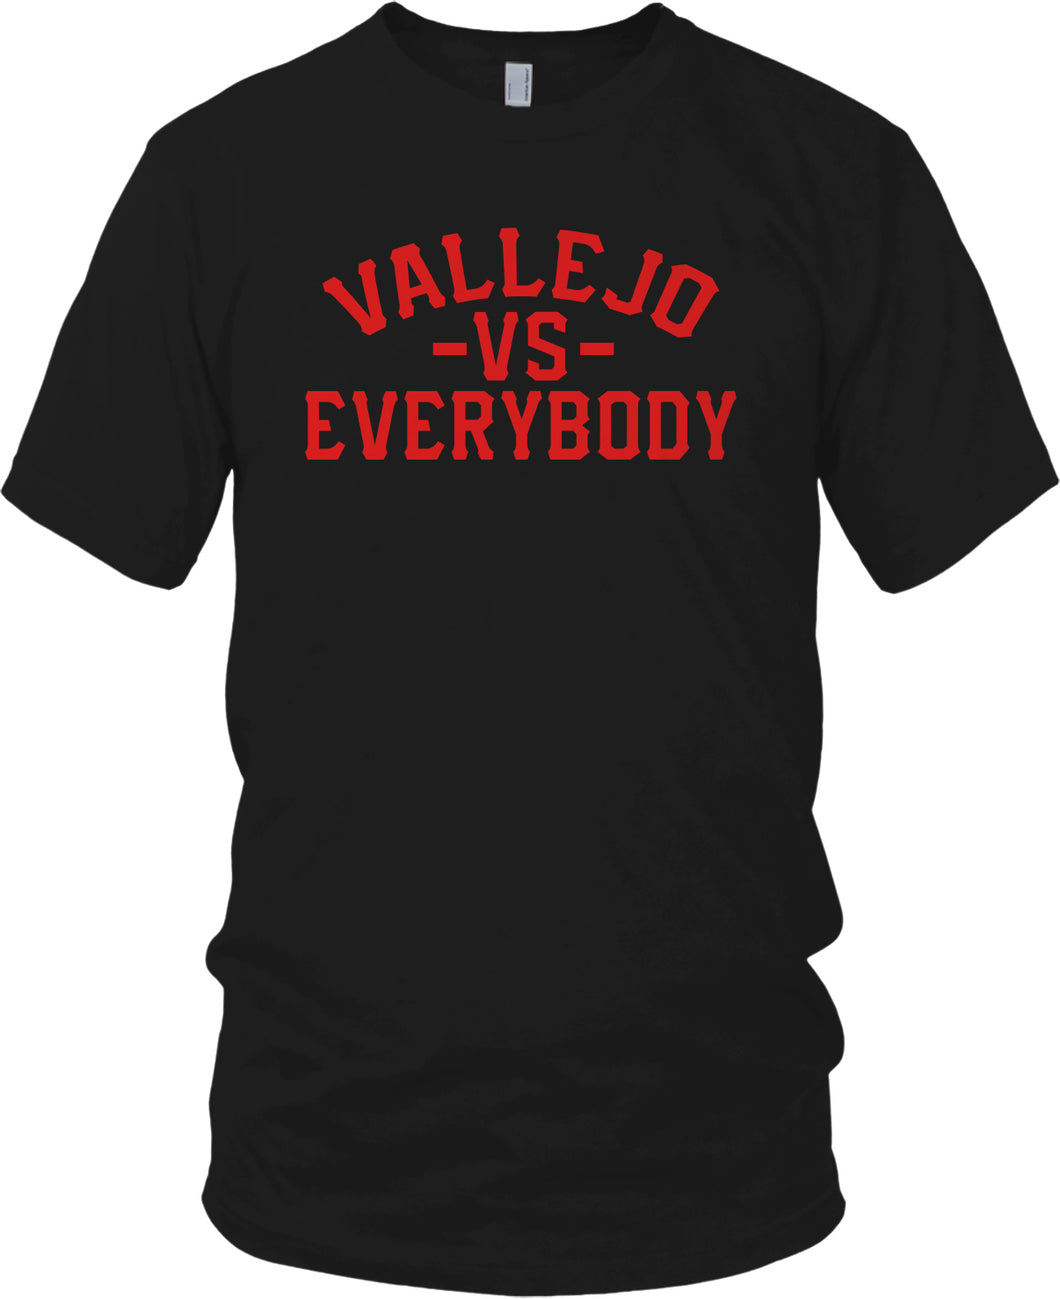 VALLEJO VS EVERYBODY BLACK & RED T-SHIRT (LIMITED EDITION)